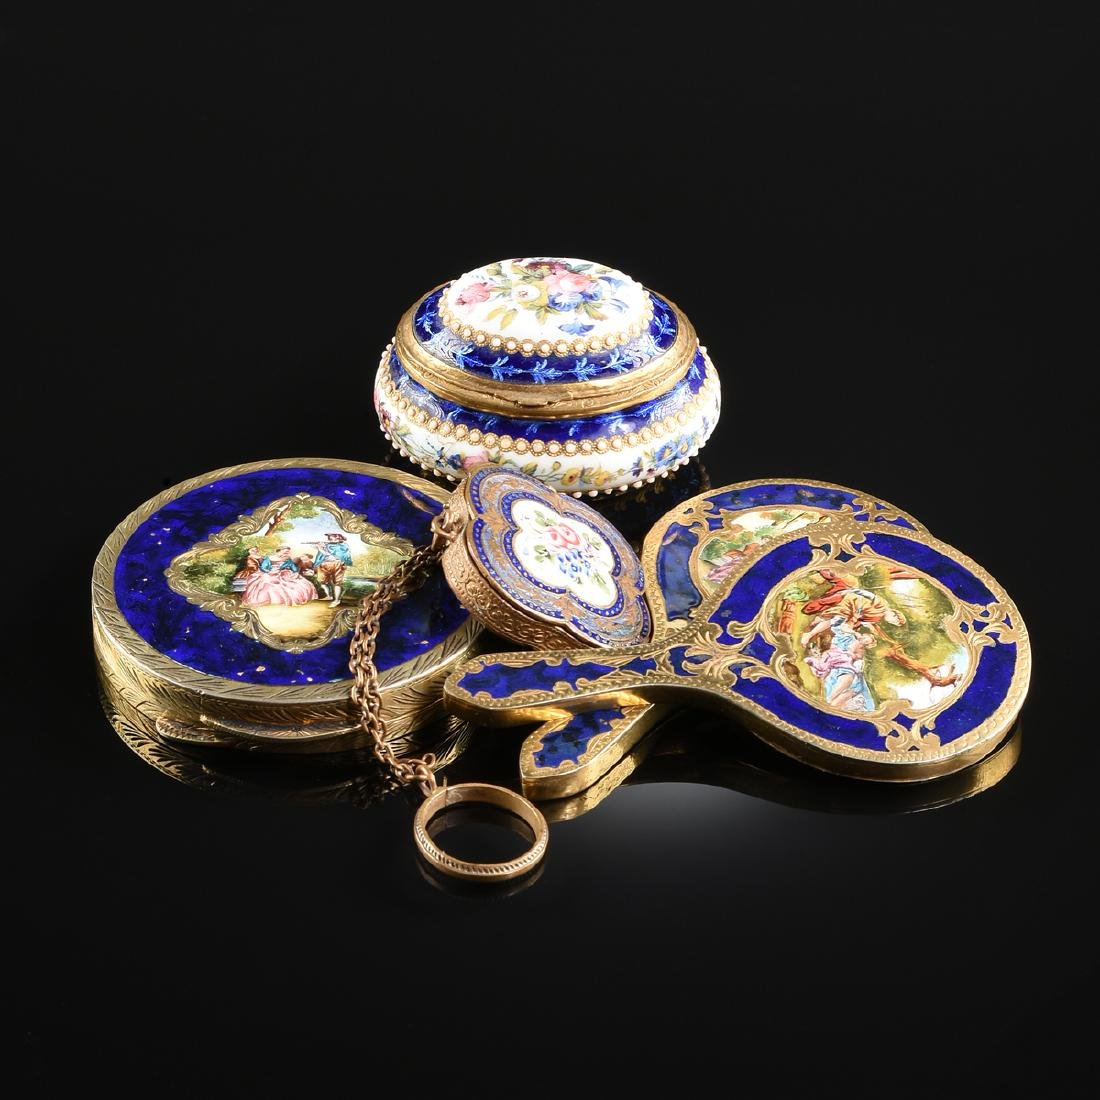 A GROUP OF FIVE ANTIQUE DIMINUTIVE GILT METAL AND